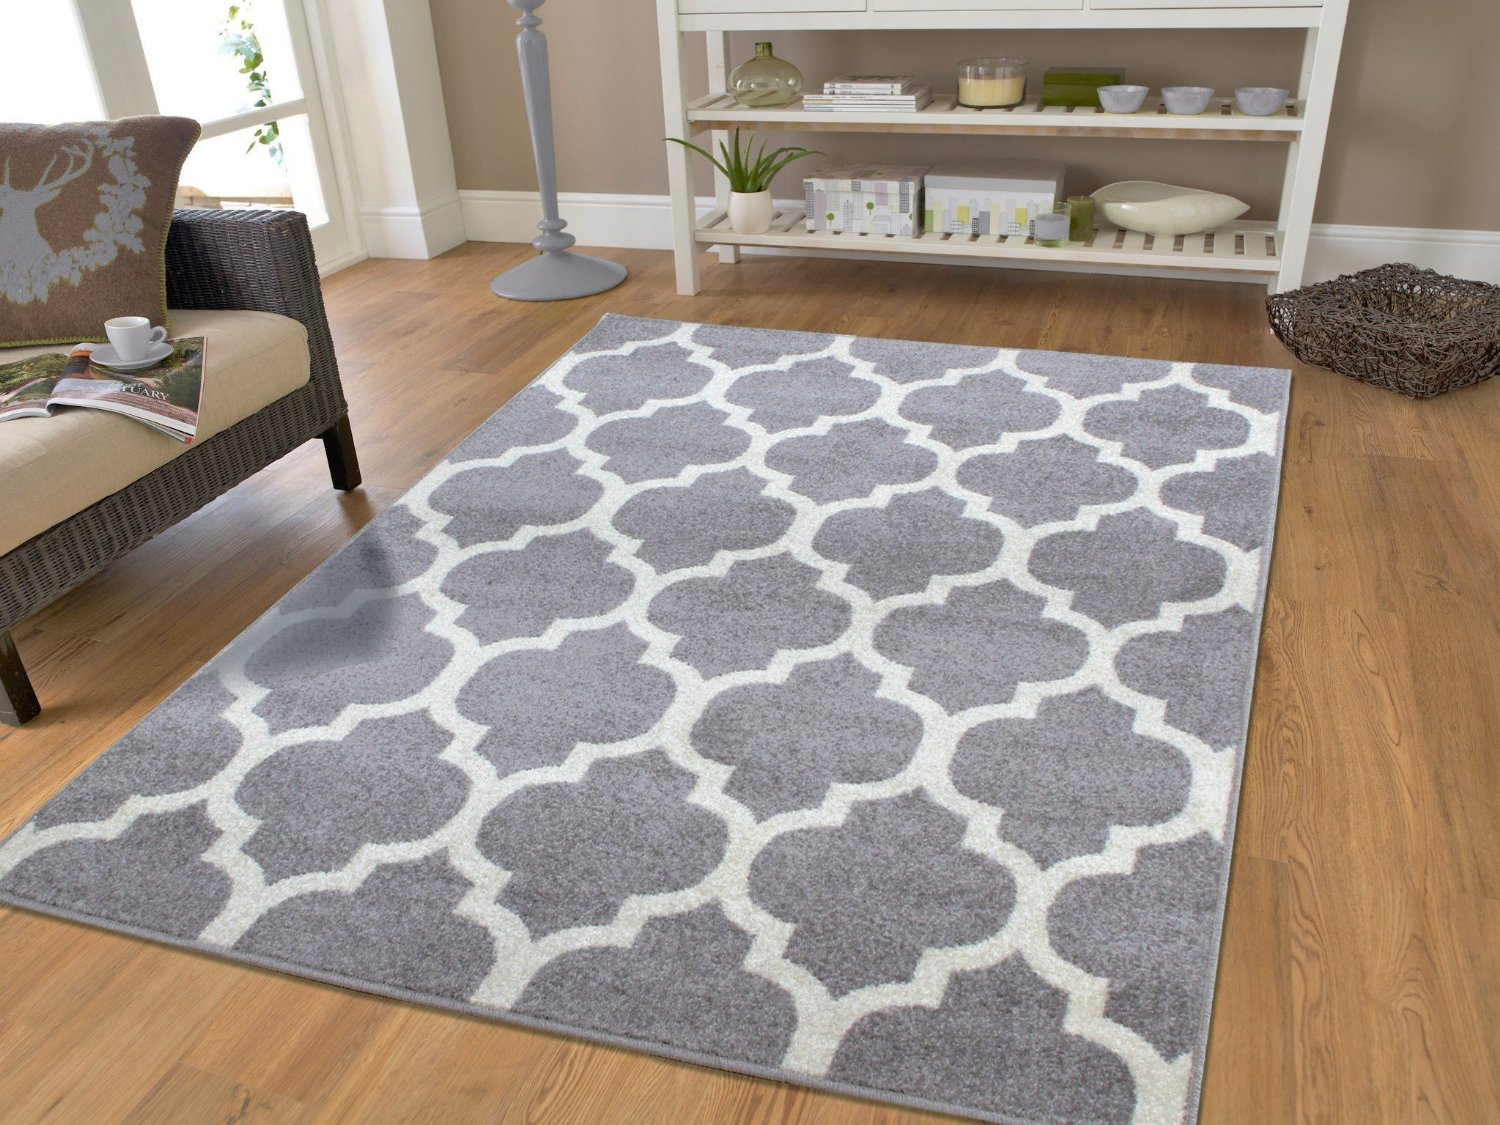 fashion gray rugs for bedroom grey rugs 5x7 dining living room rugs for under the table